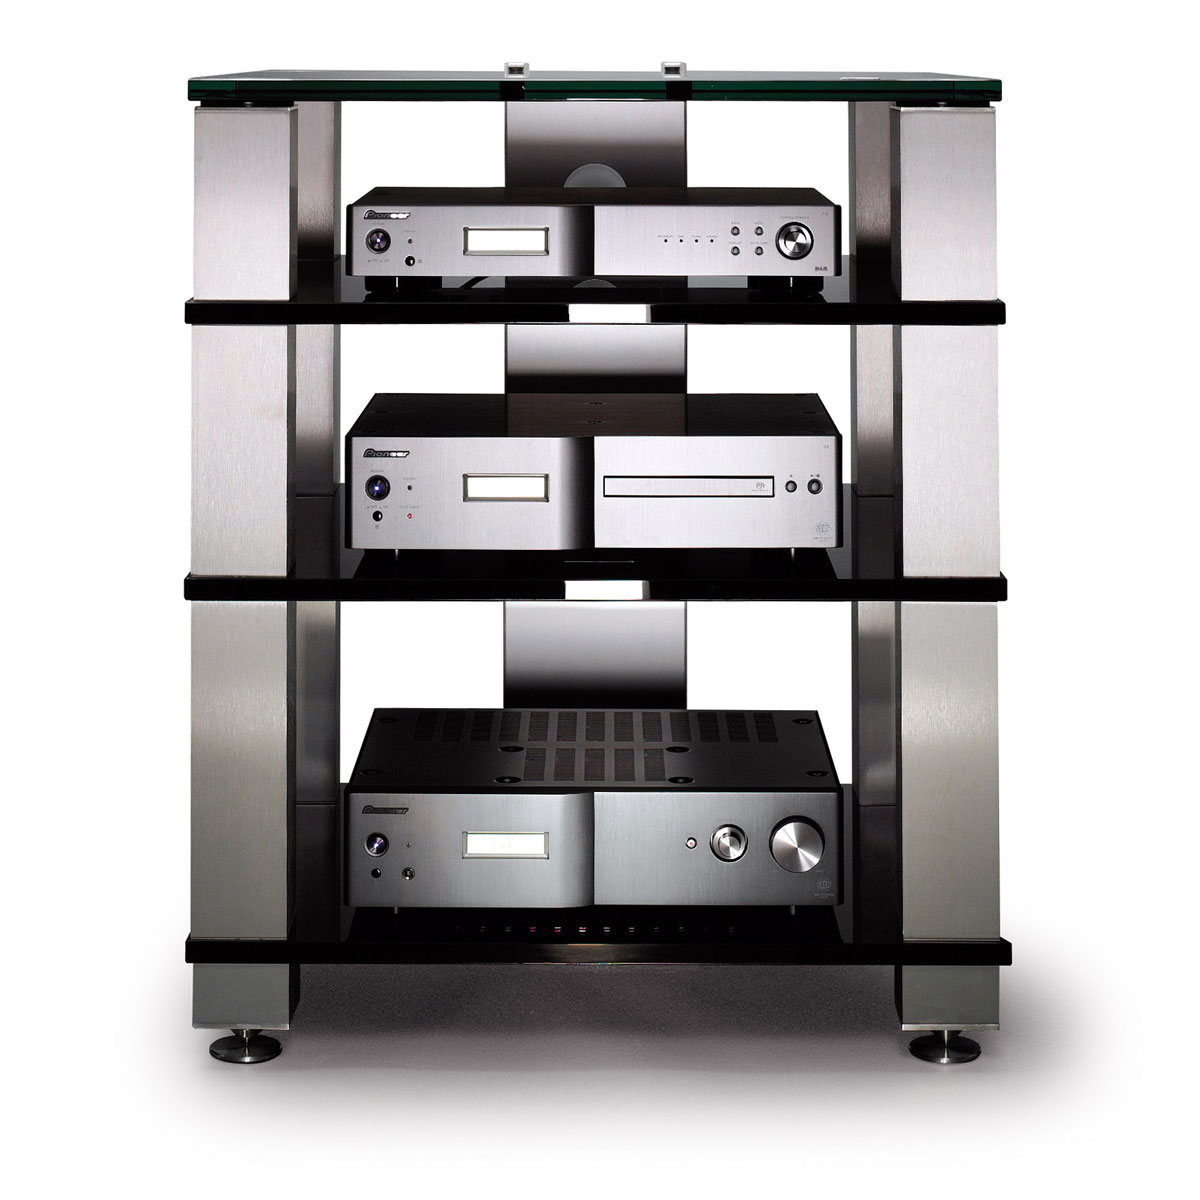 Hifi Möbel Design Hifi Möbel Phonomöbel Hifi Racks Hifi Regale Audio